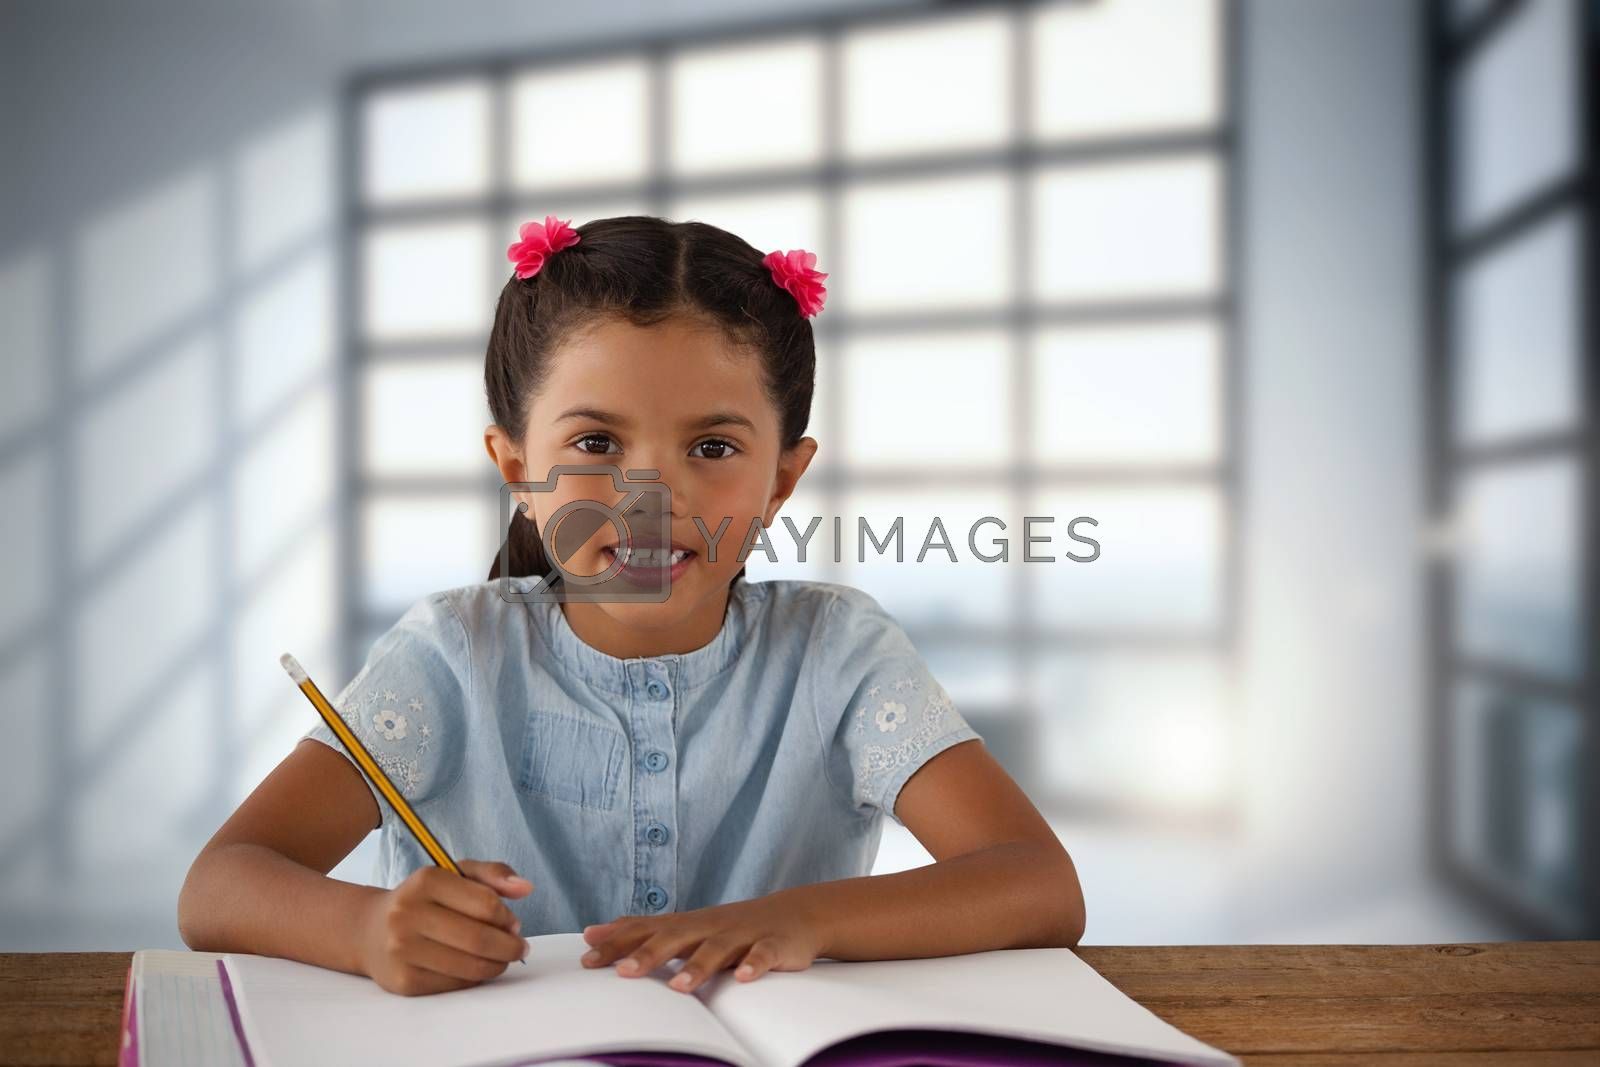 Composite image of smiling girl writing in book at desk by Wavebreakmedia